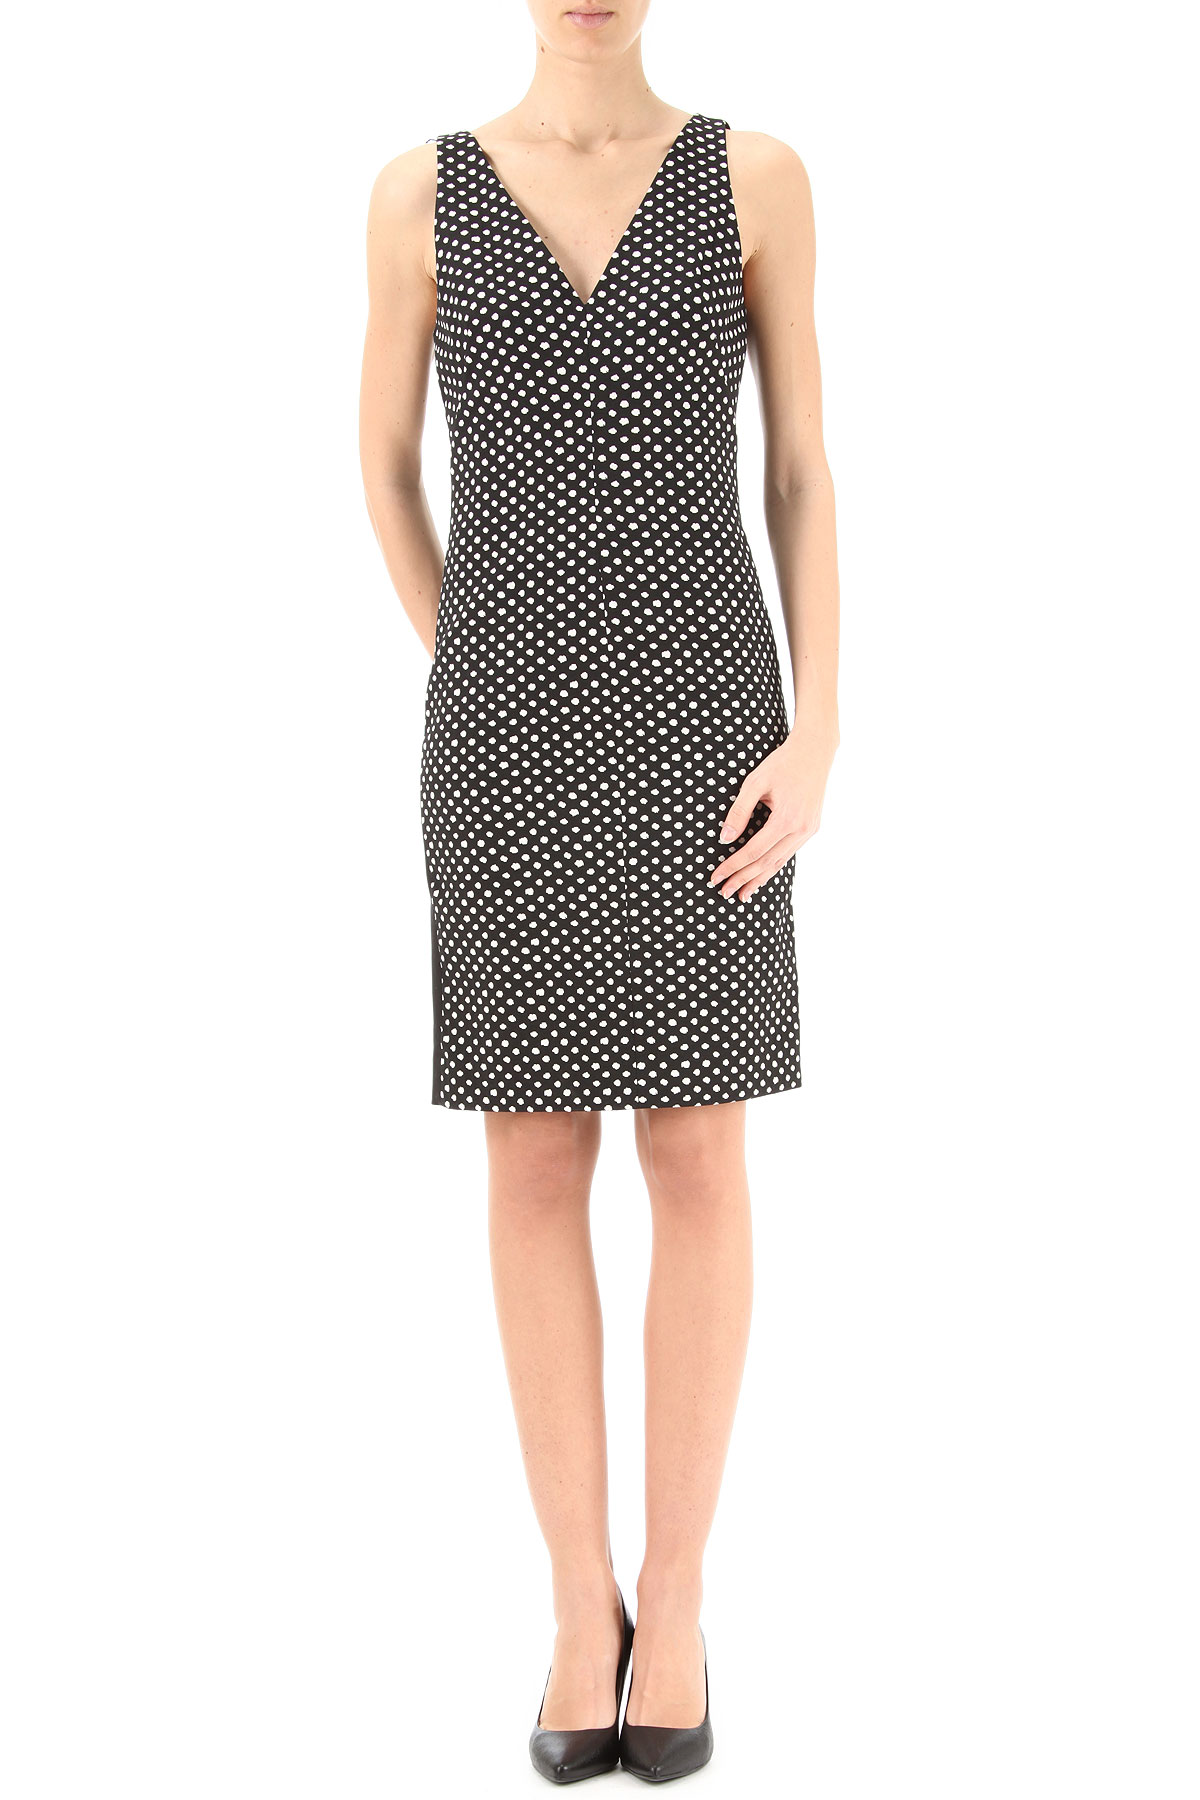 Diane Von Furstenberg Dress for Women, Evening Cocktail Party On Sale, Black, polyestere, 2017, USA 8 -- IT 42 USA 10 -- IT 44 USA-349427